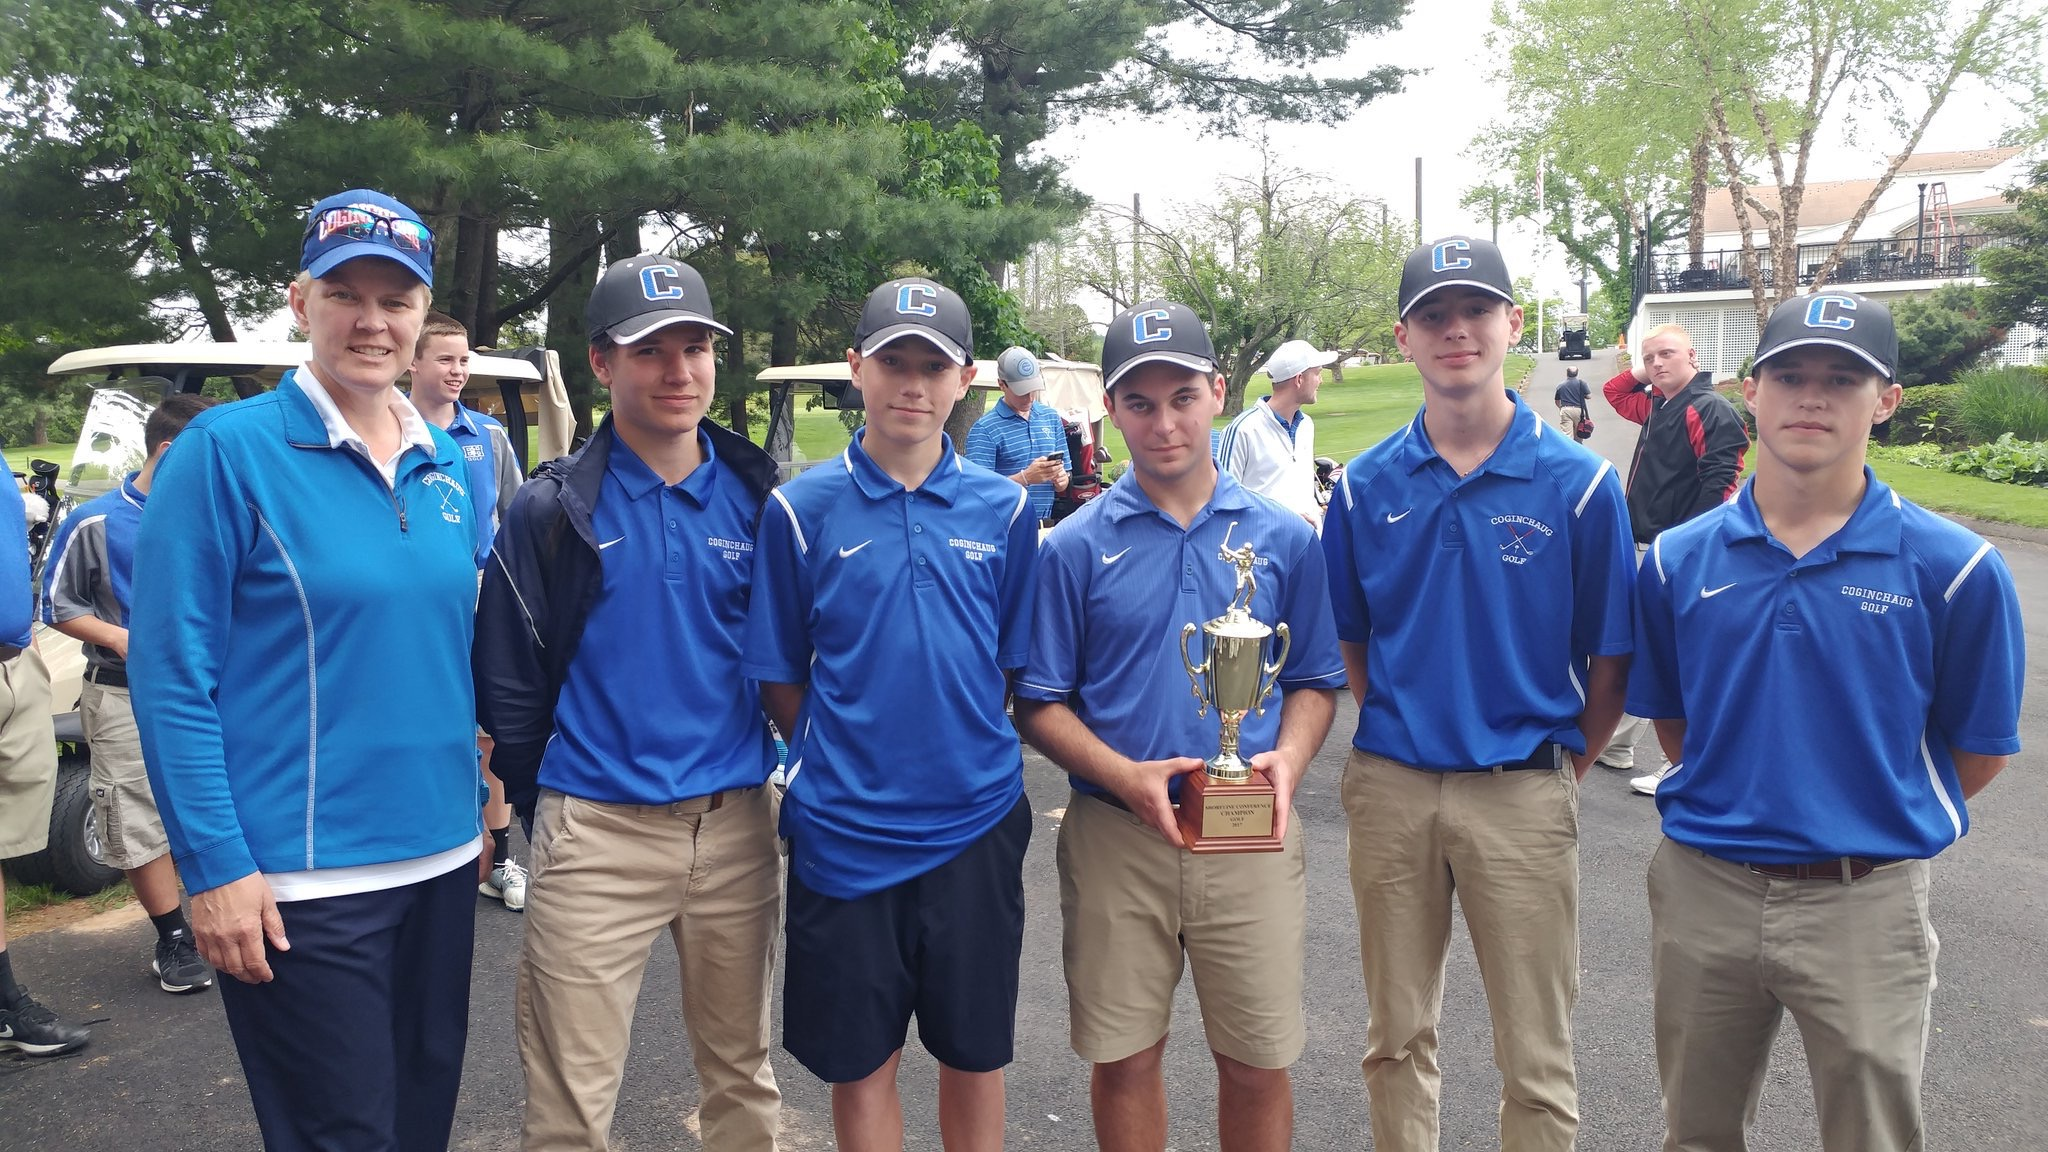 Golf Wins Shorelines for First Time in Almost a Decade